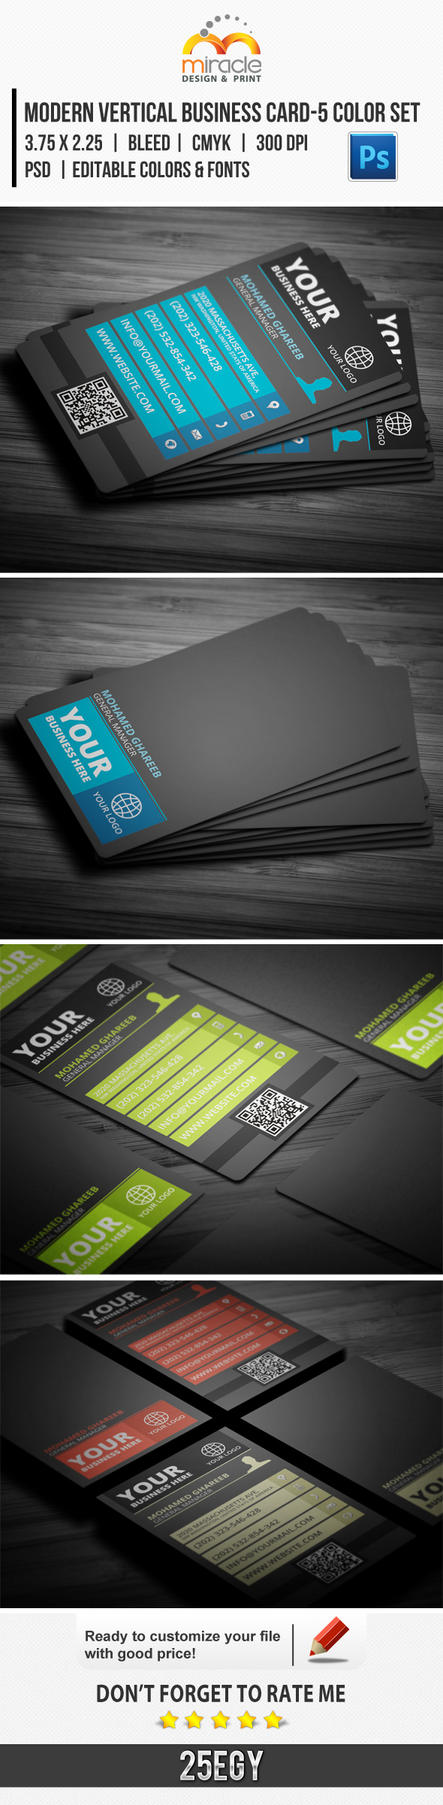 Modern Vertical Business Card-5 Color Set by EgYpToS